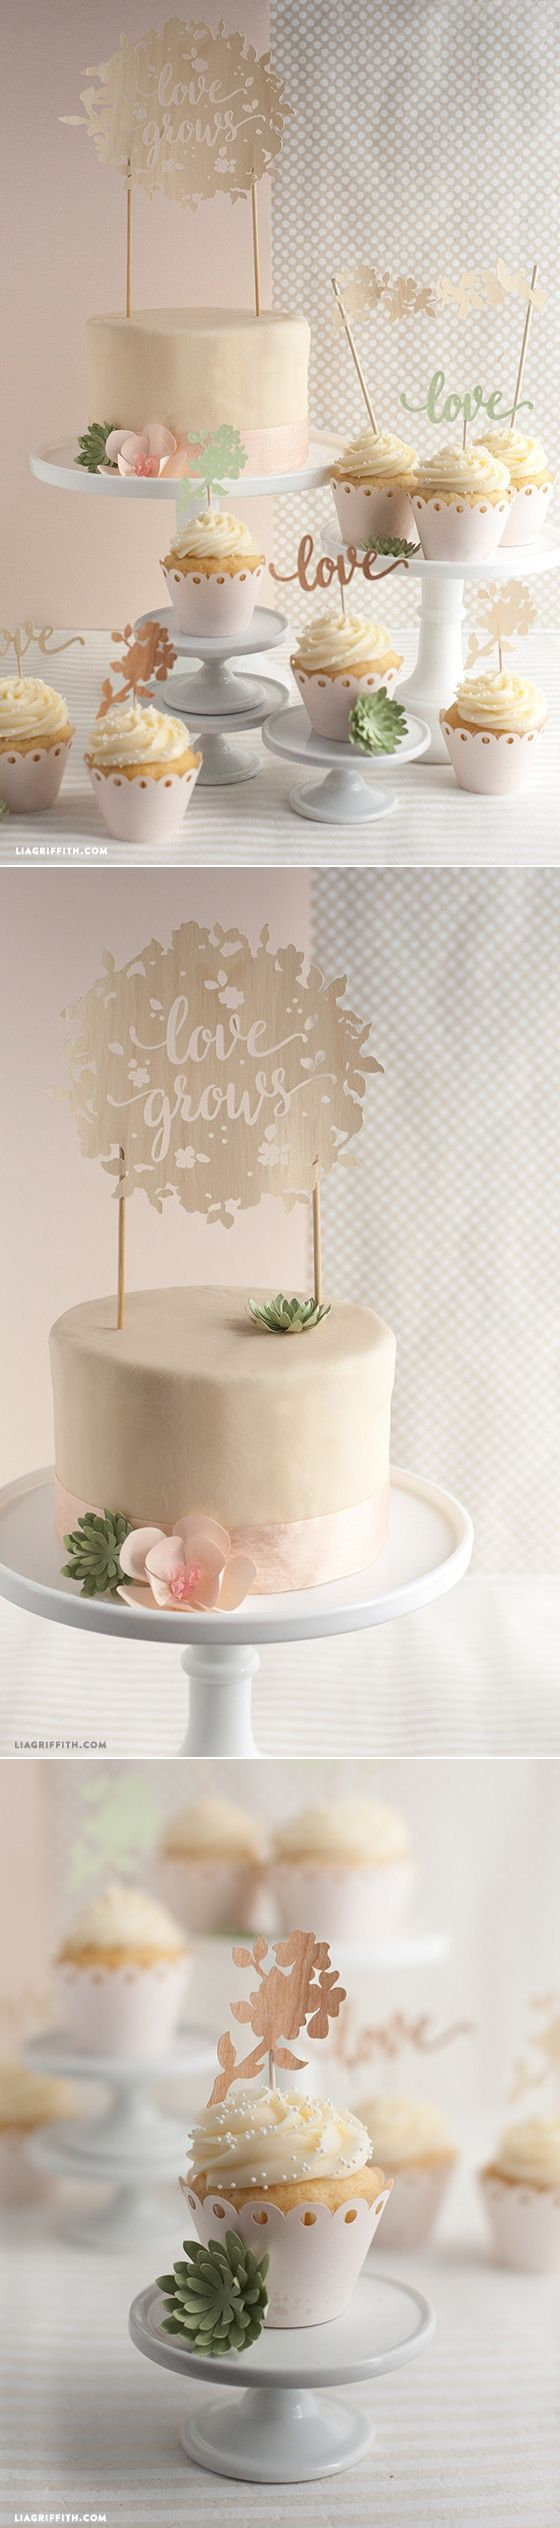 DIY Wedding Cake and Cupcake Topper | Cake, Patterns and Wedding cake